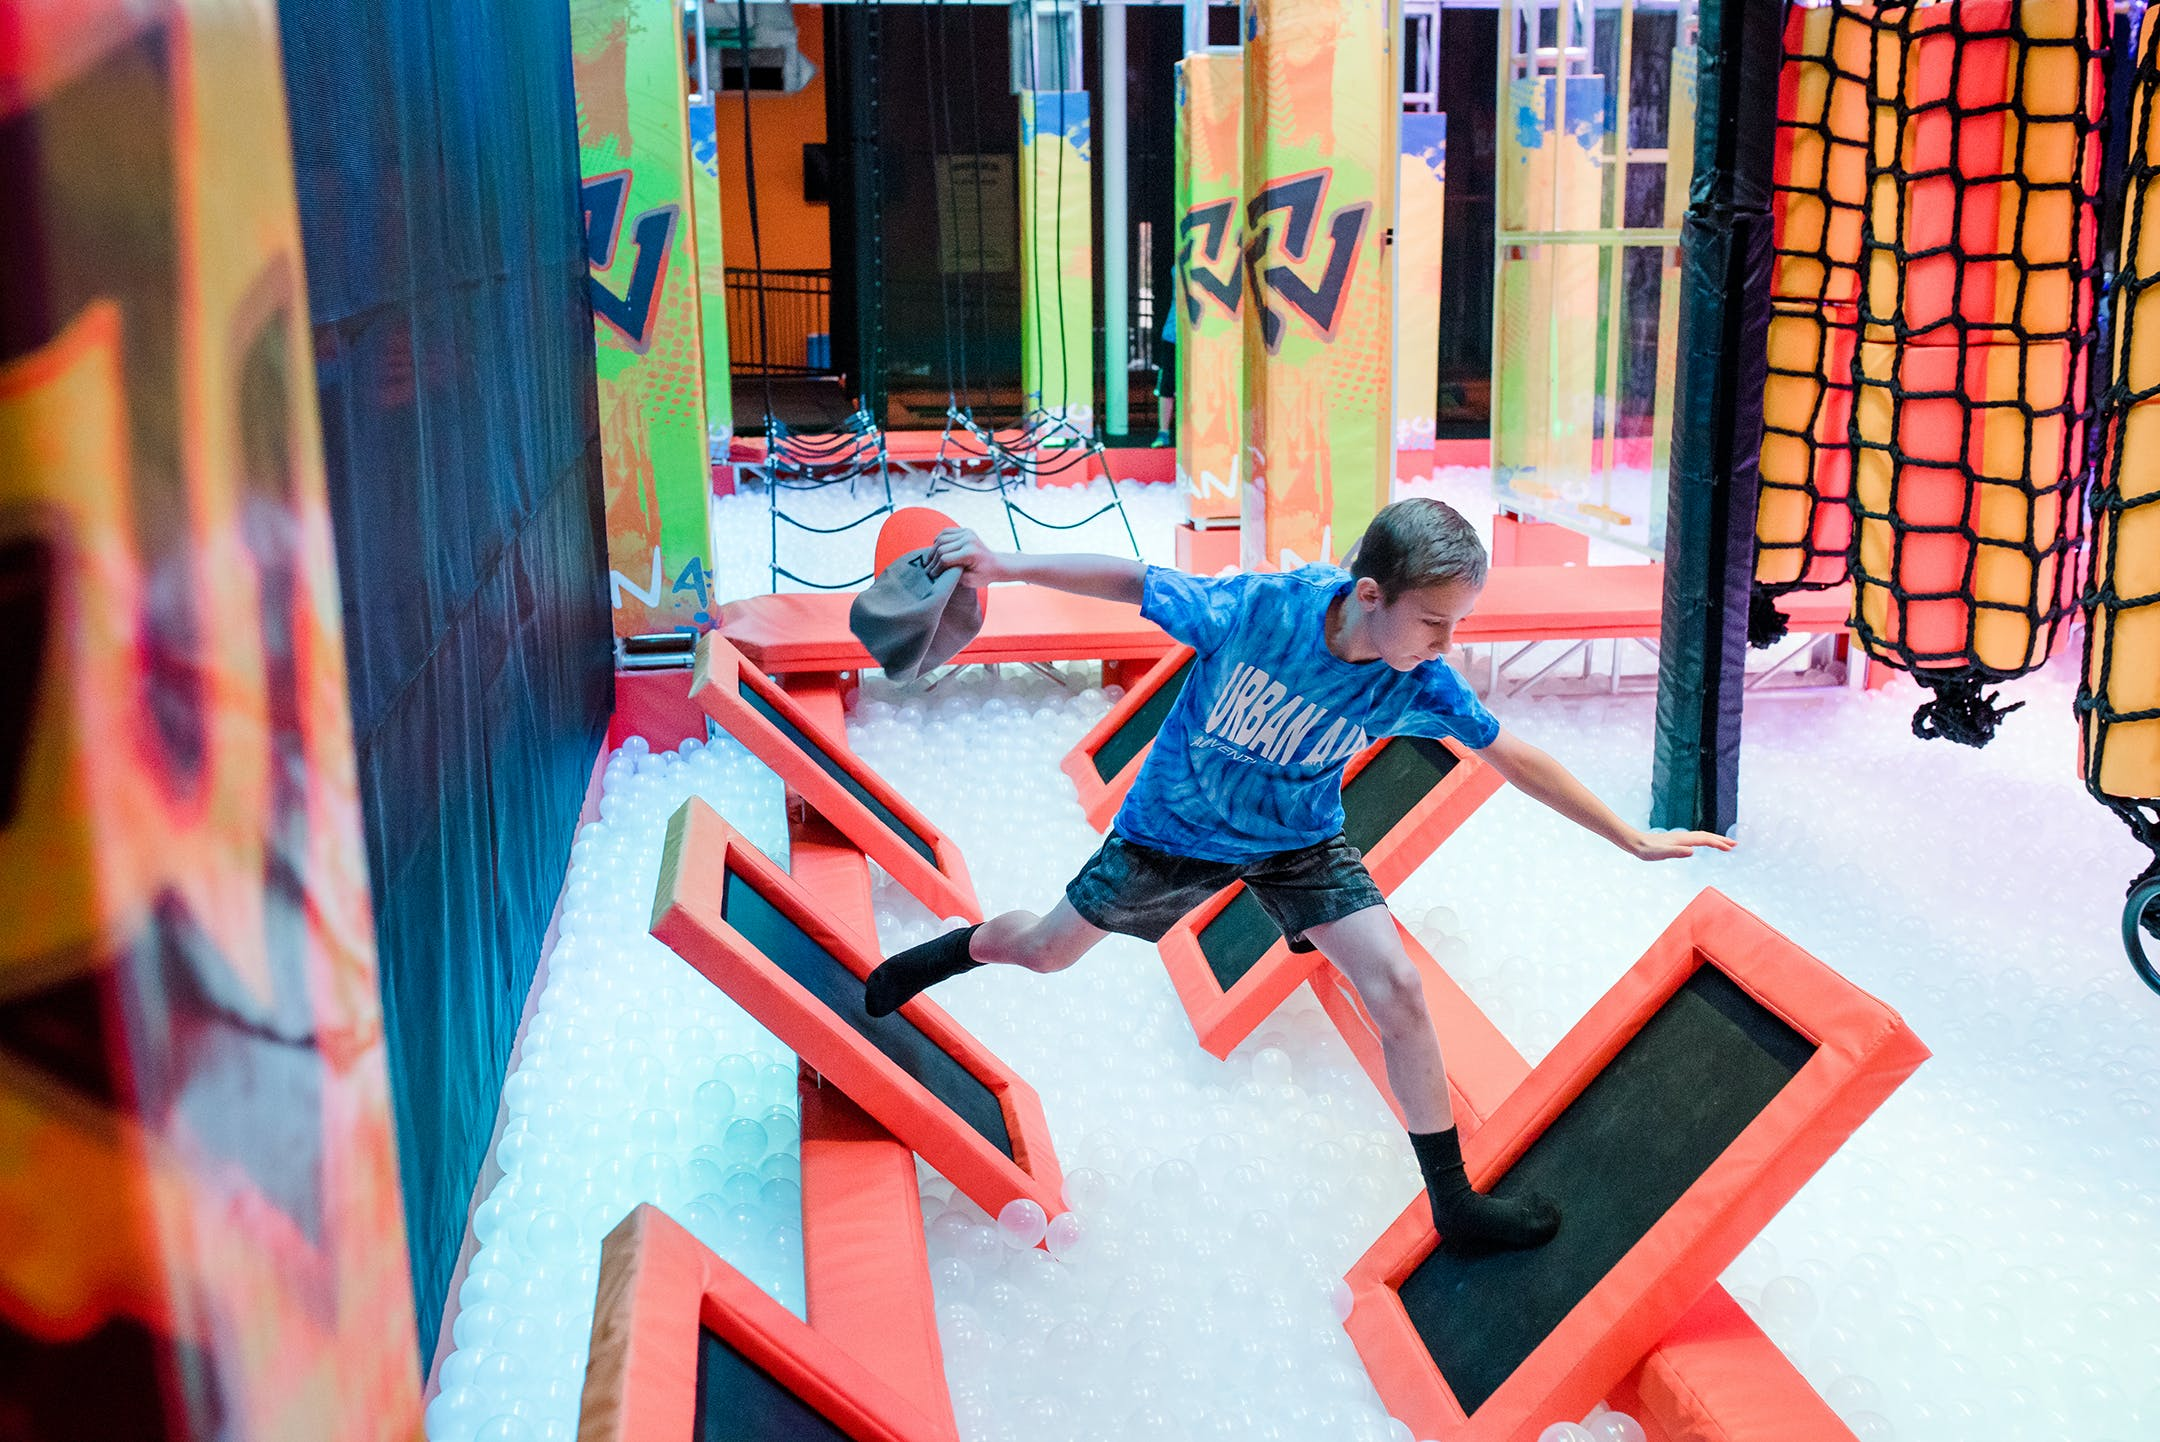 Urban Air Adventure Park Brings Exhilarating Indoor Attraction to Hudson Oaks, Texas 1